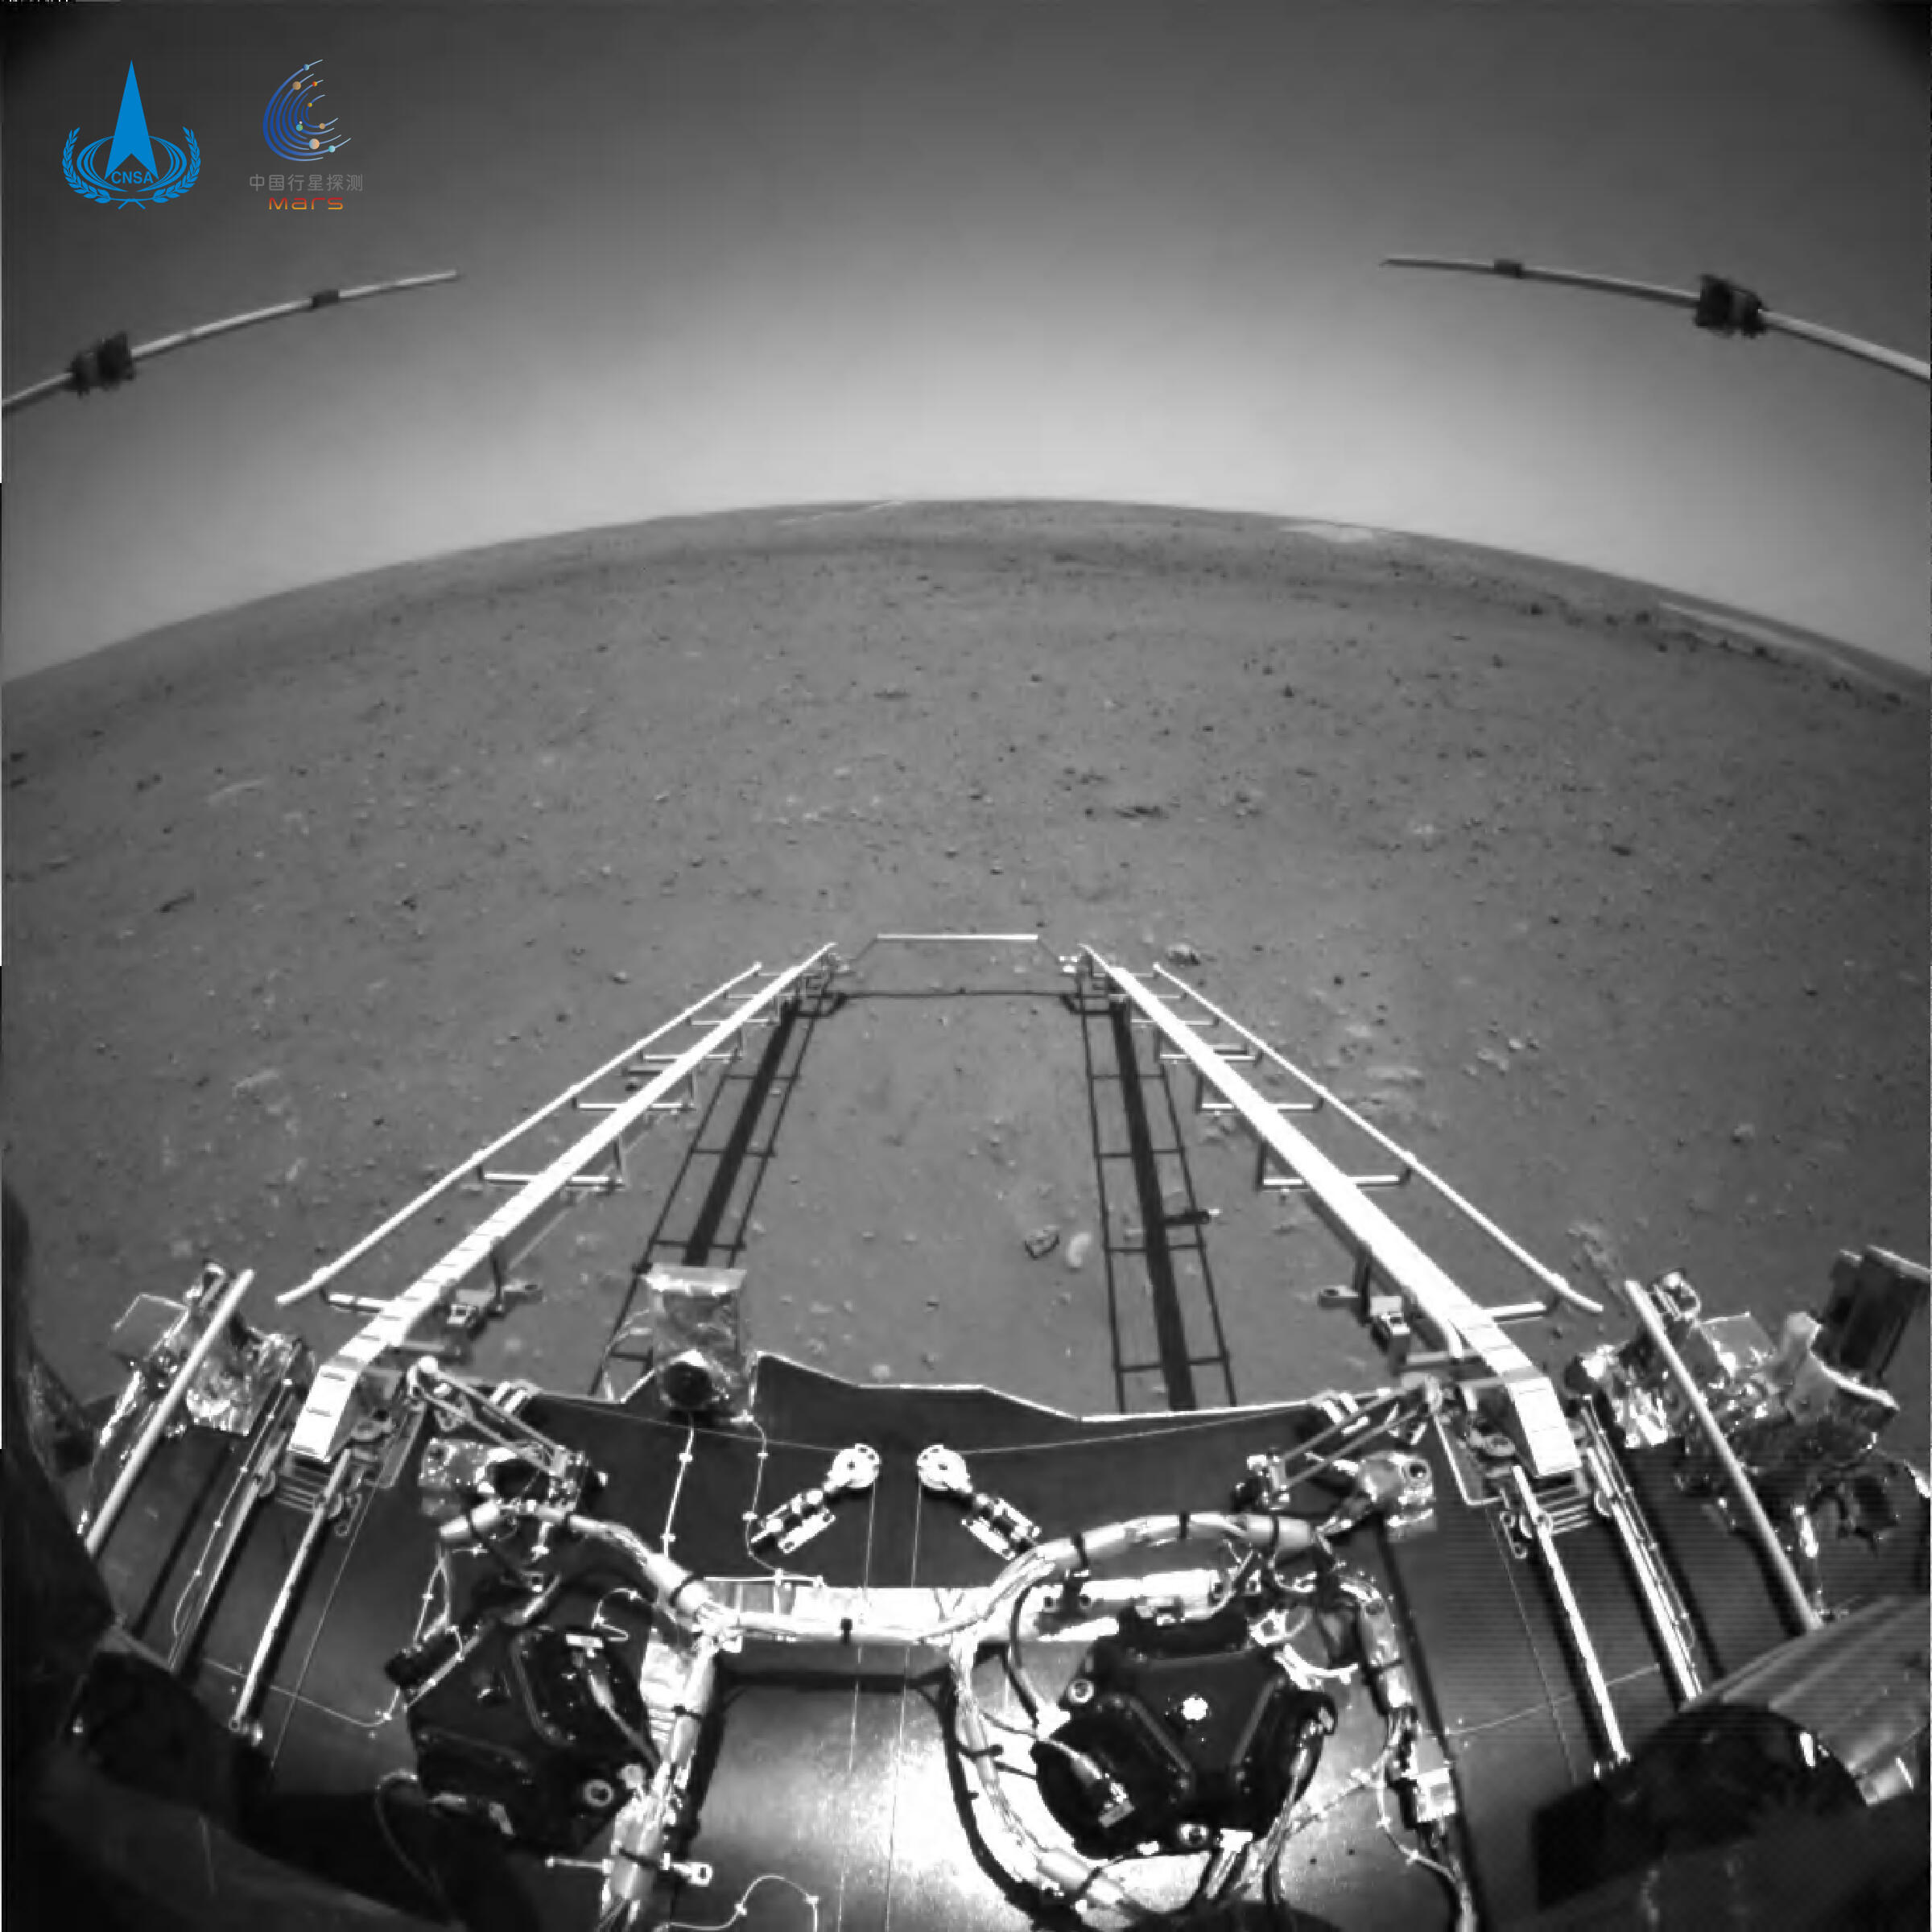 Black-and-white image from the Zhurong Mars rover